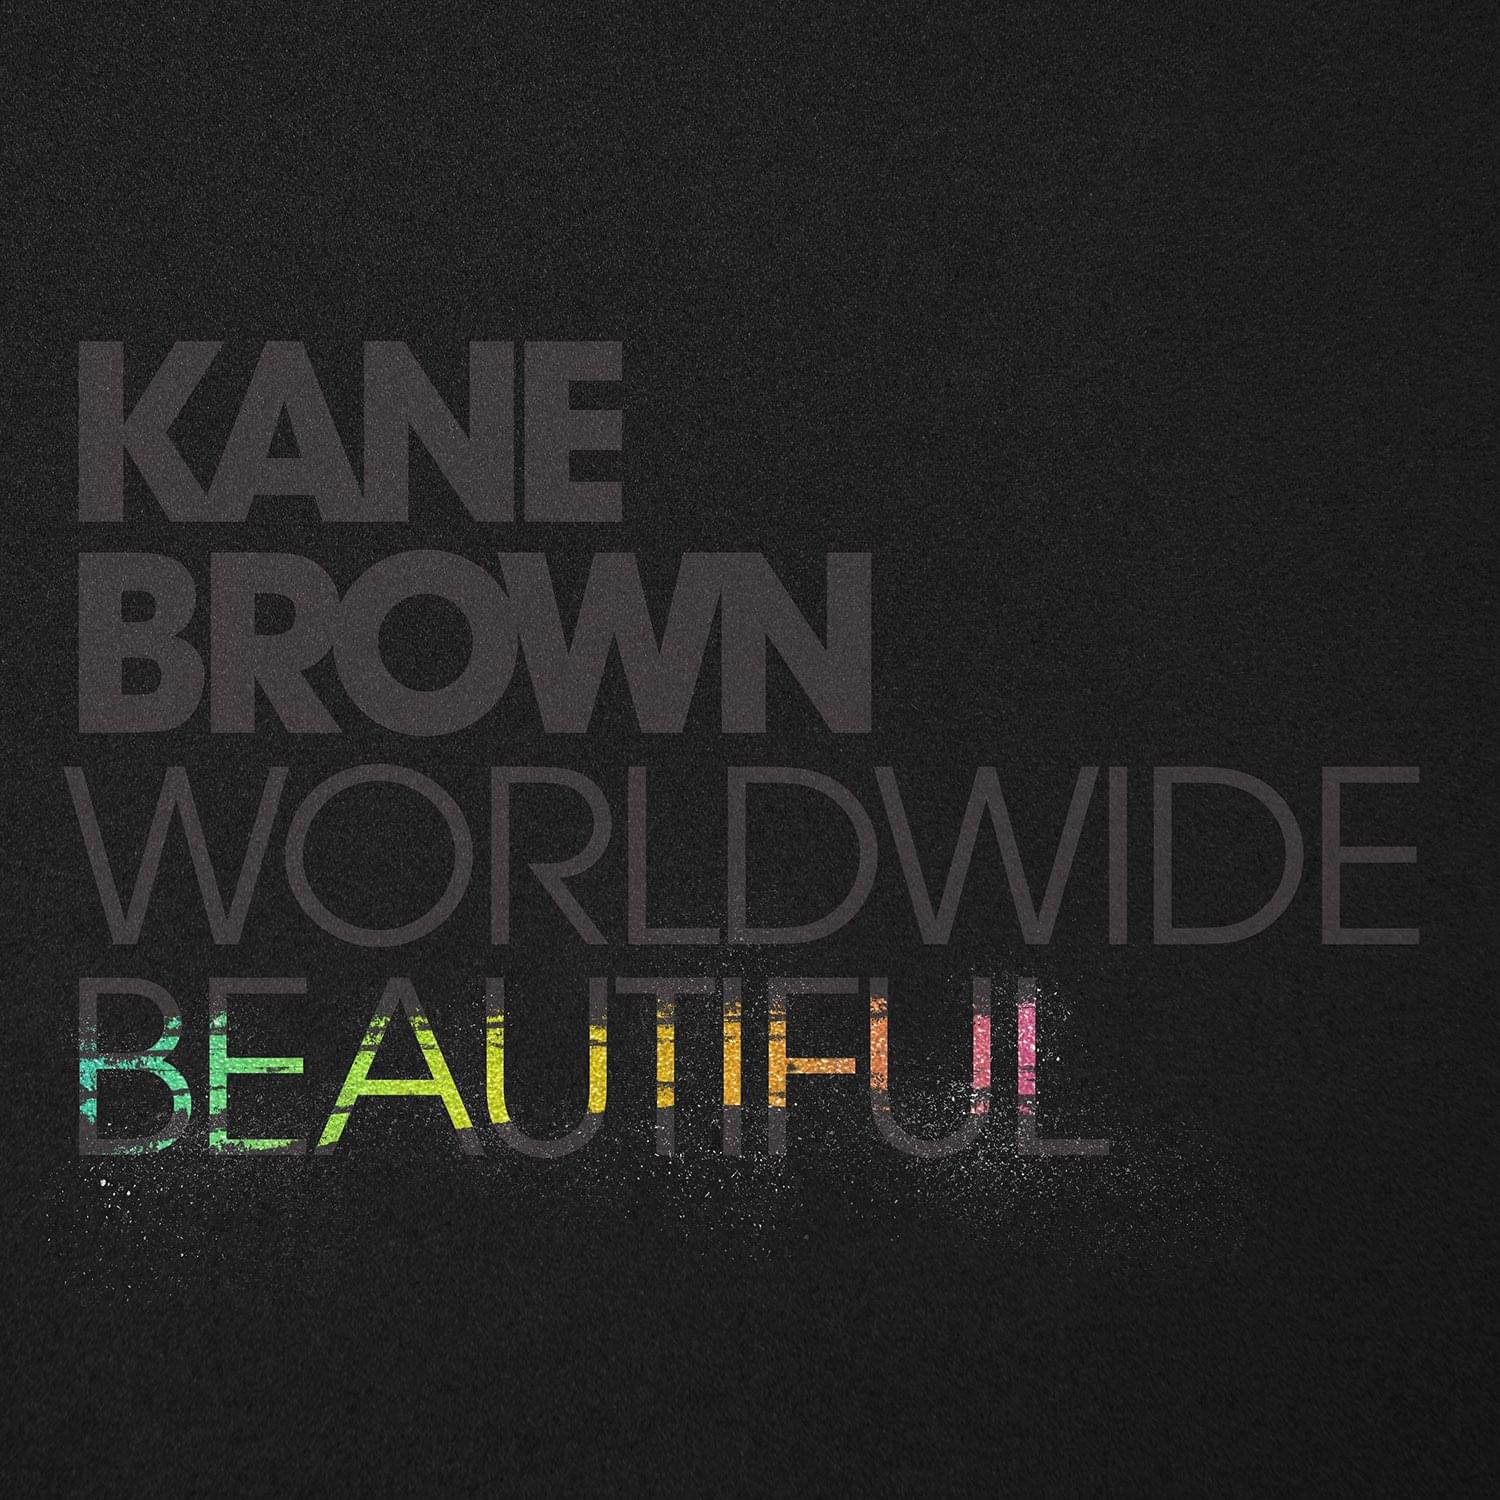 """Kane Brown Releases New Song """"Worldwide Beautiful"""" Donates Proceeds To Boys & Girls Clubs of America {LISTEN}"""